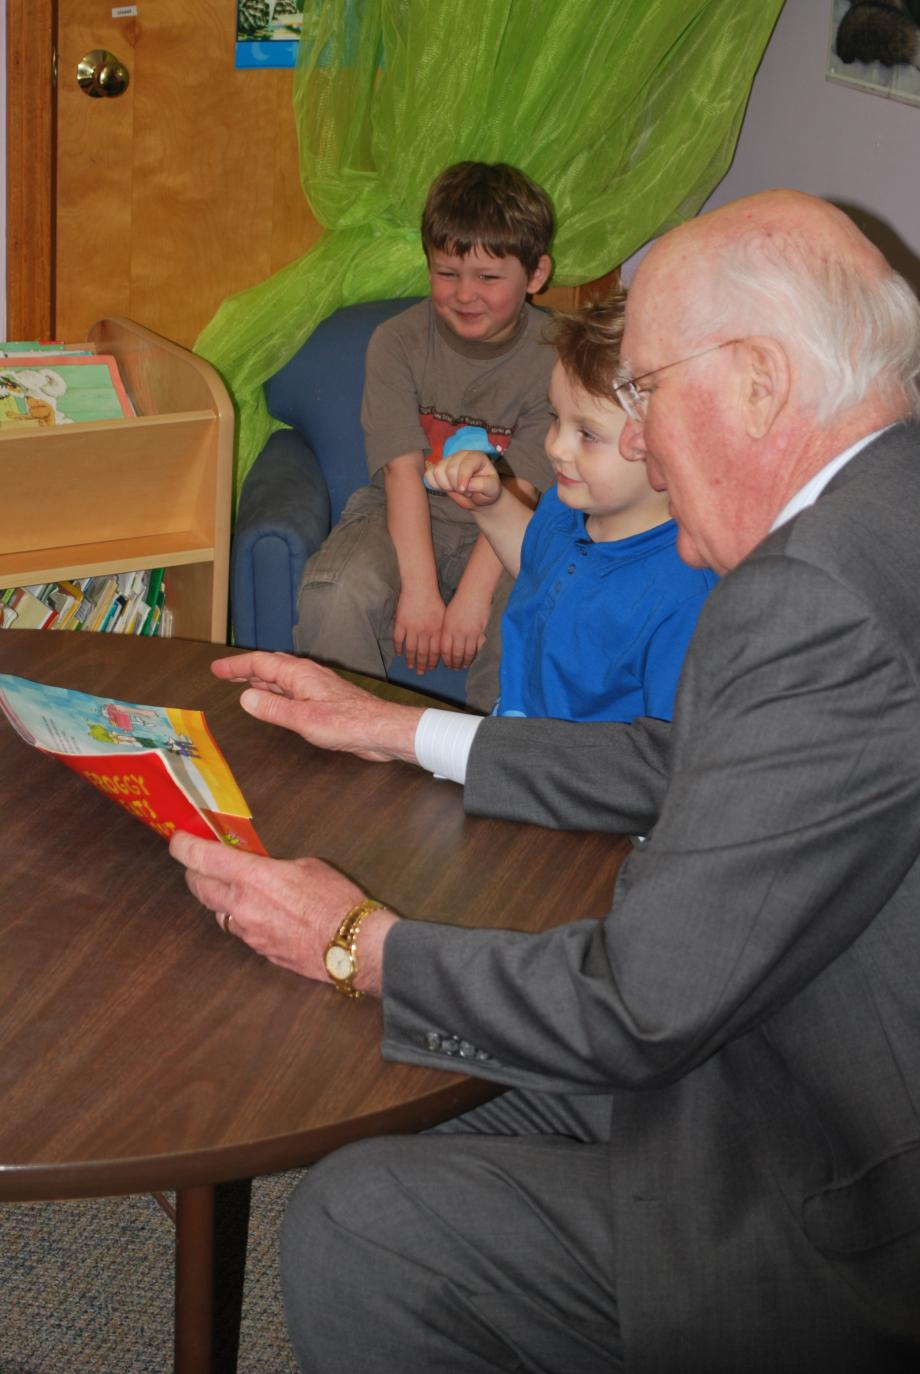 Senator Leahy toured the Springfield Parent Child Center on February 16. Senator Leahy, and his wife Marcelle, spent some time reading with some of the children at the Center.